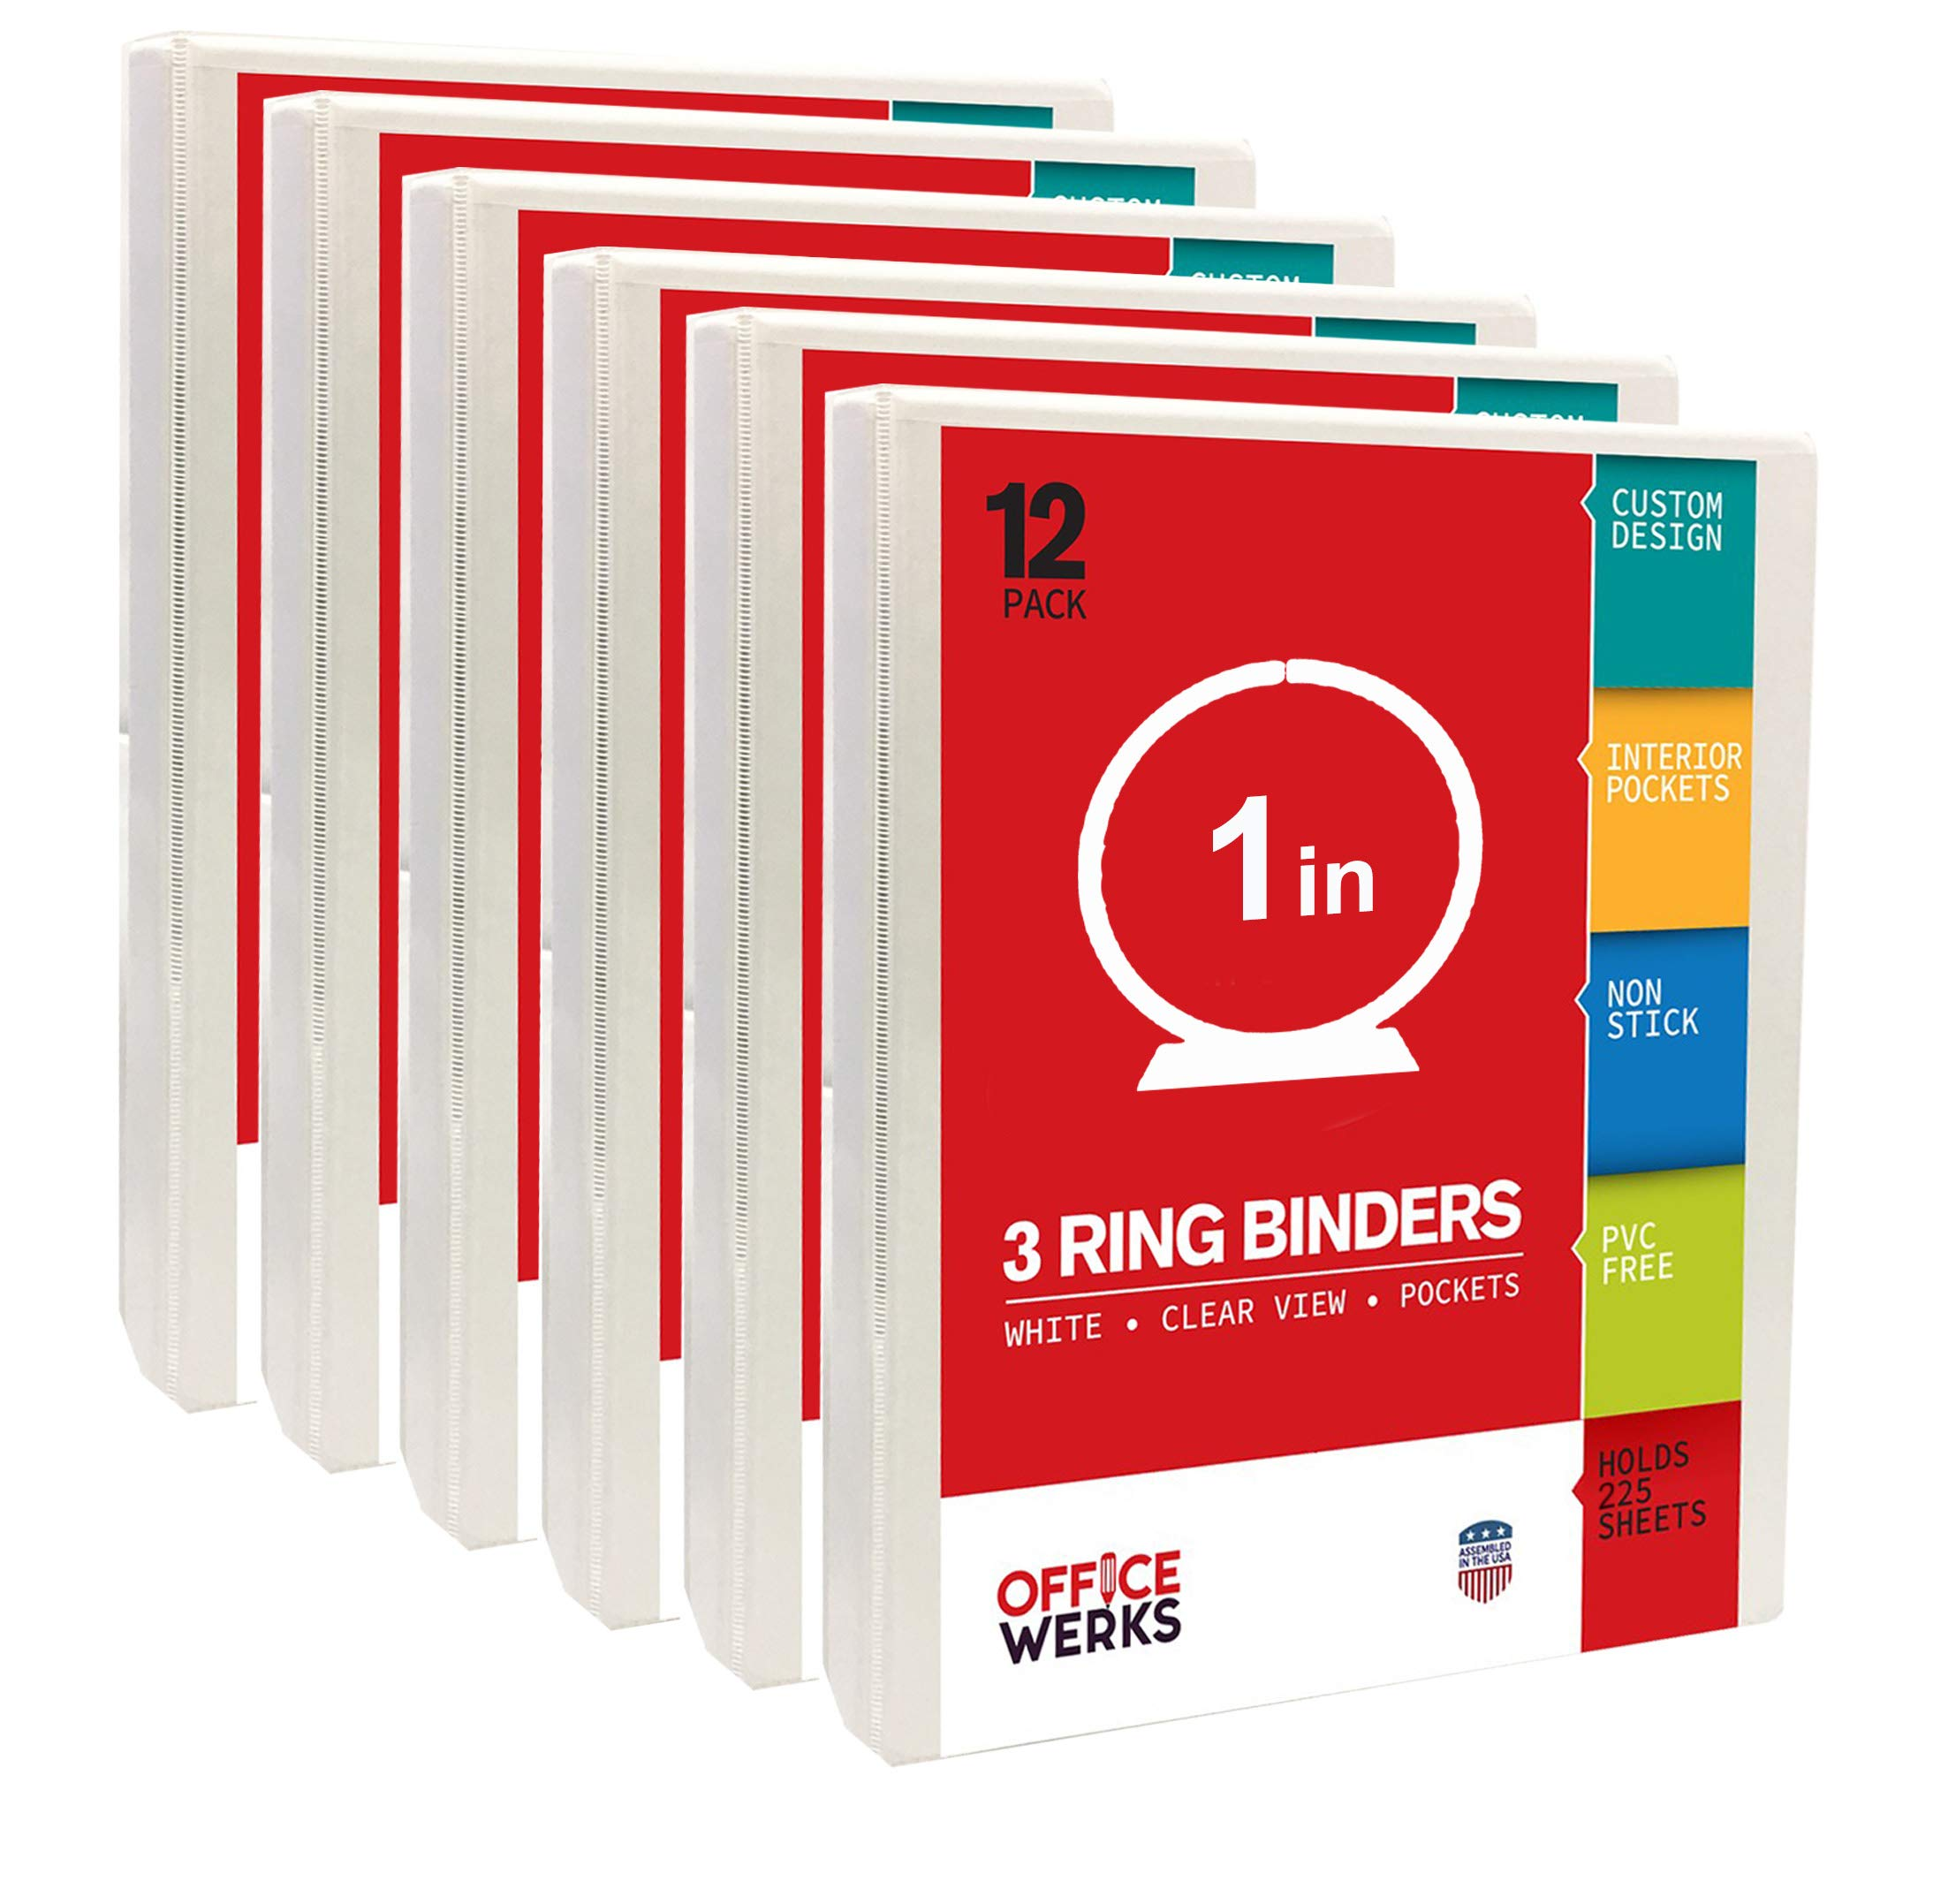 3 Ring Binder, 1 Inch, Round Rings, White, 12 Pack, Clear View, Pockets by Ring Binder Depot